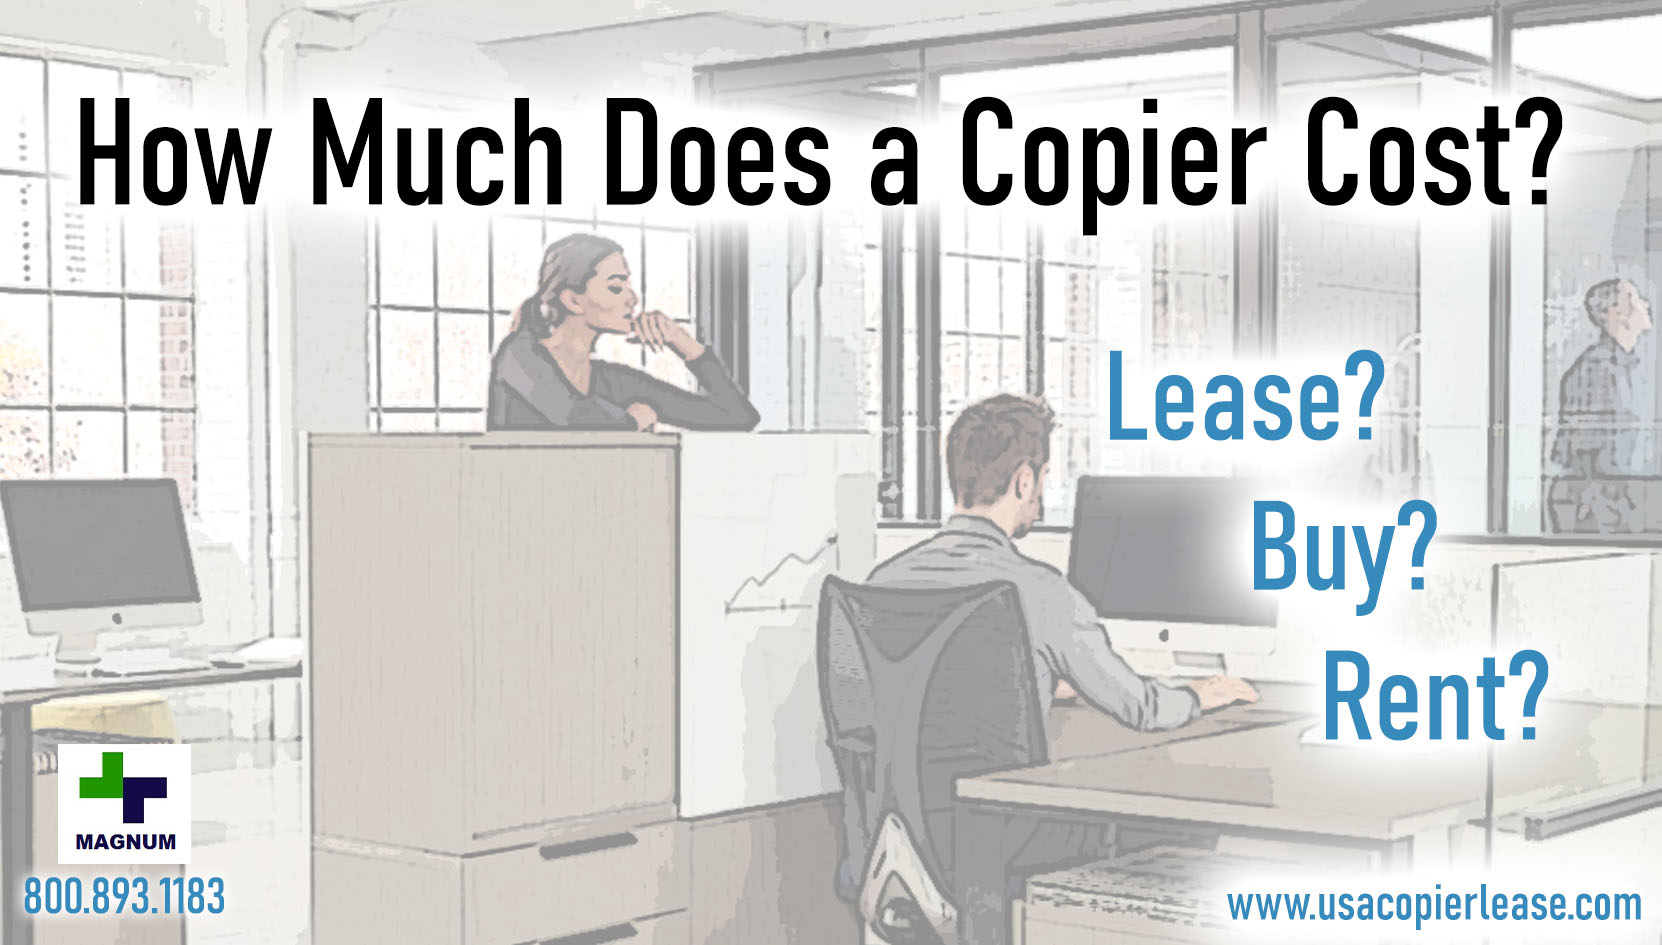 How Much Does a Copy Machine Cost?